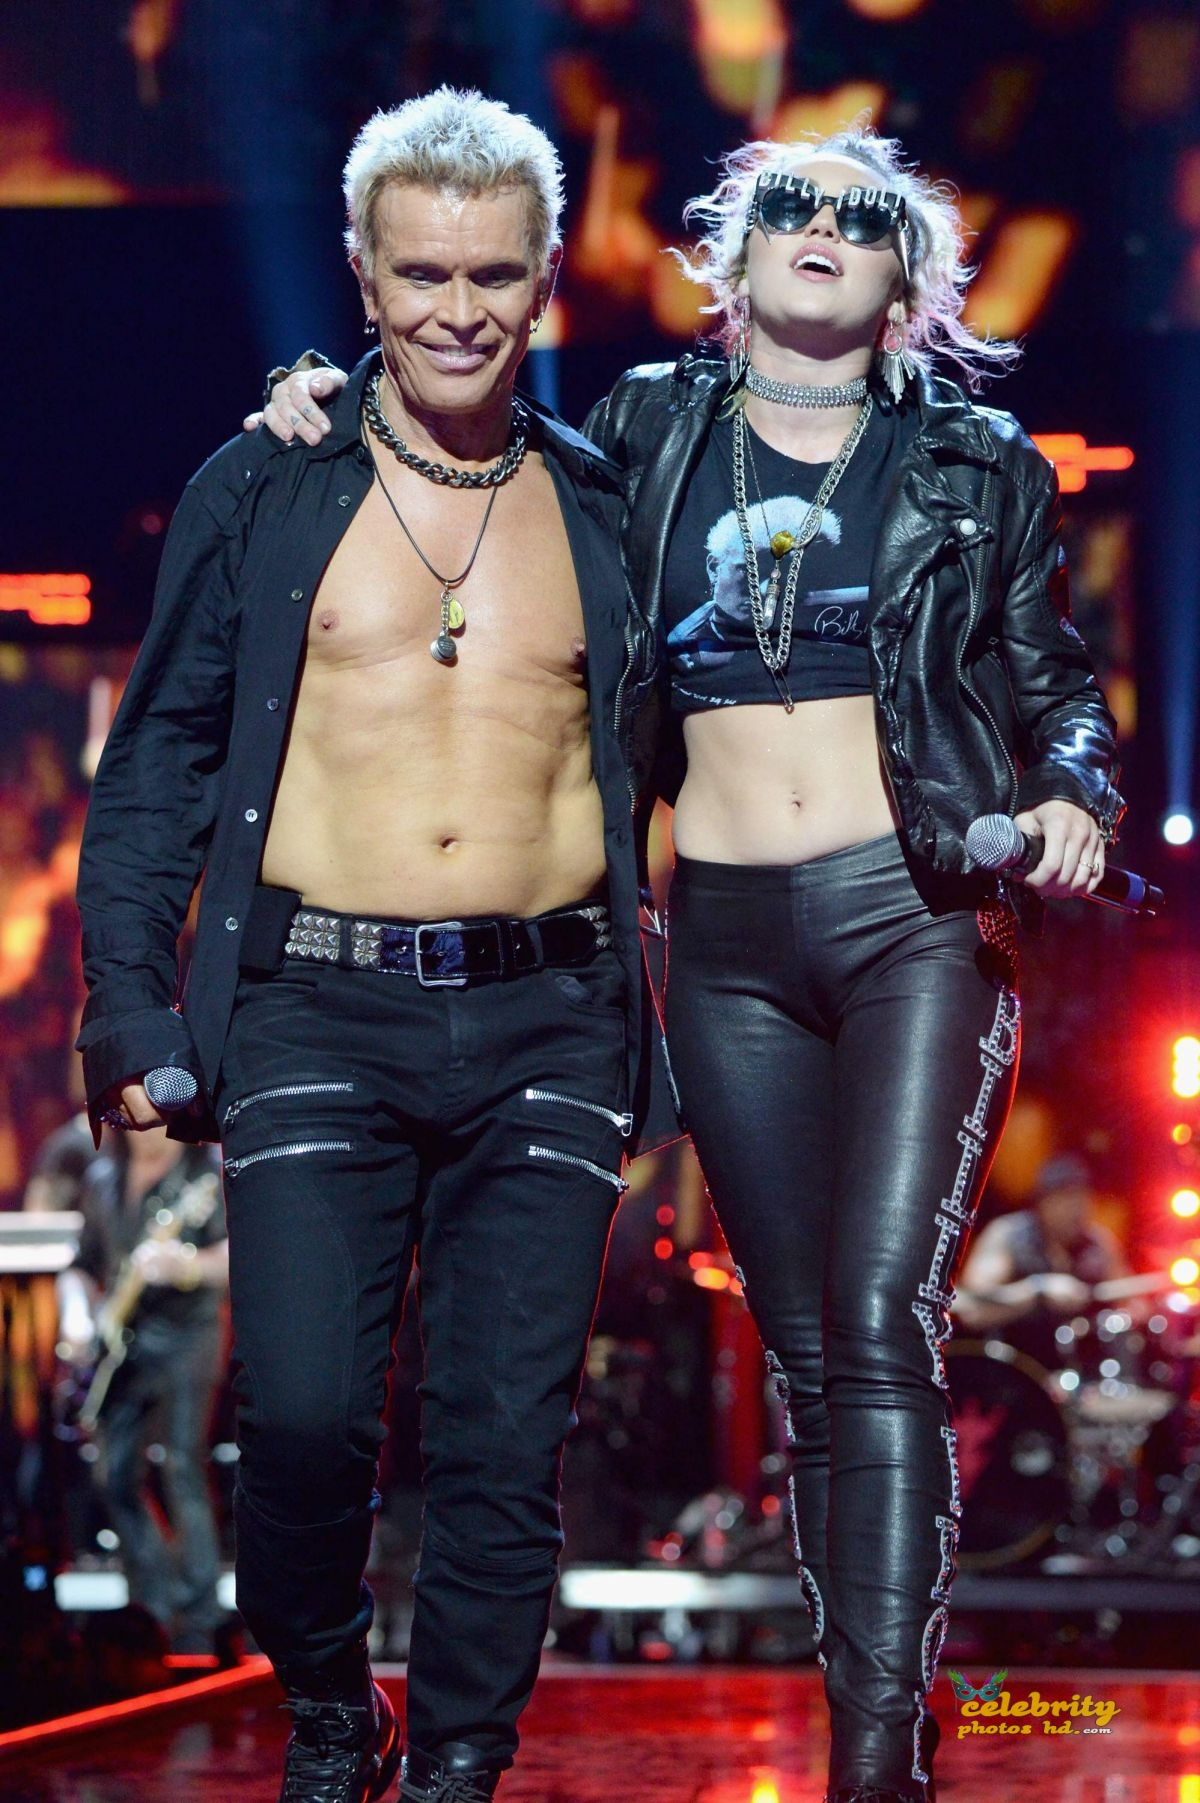 miley-cyrus-joins-billy-idol-onstage-during-the-iheartradio-festival-_7